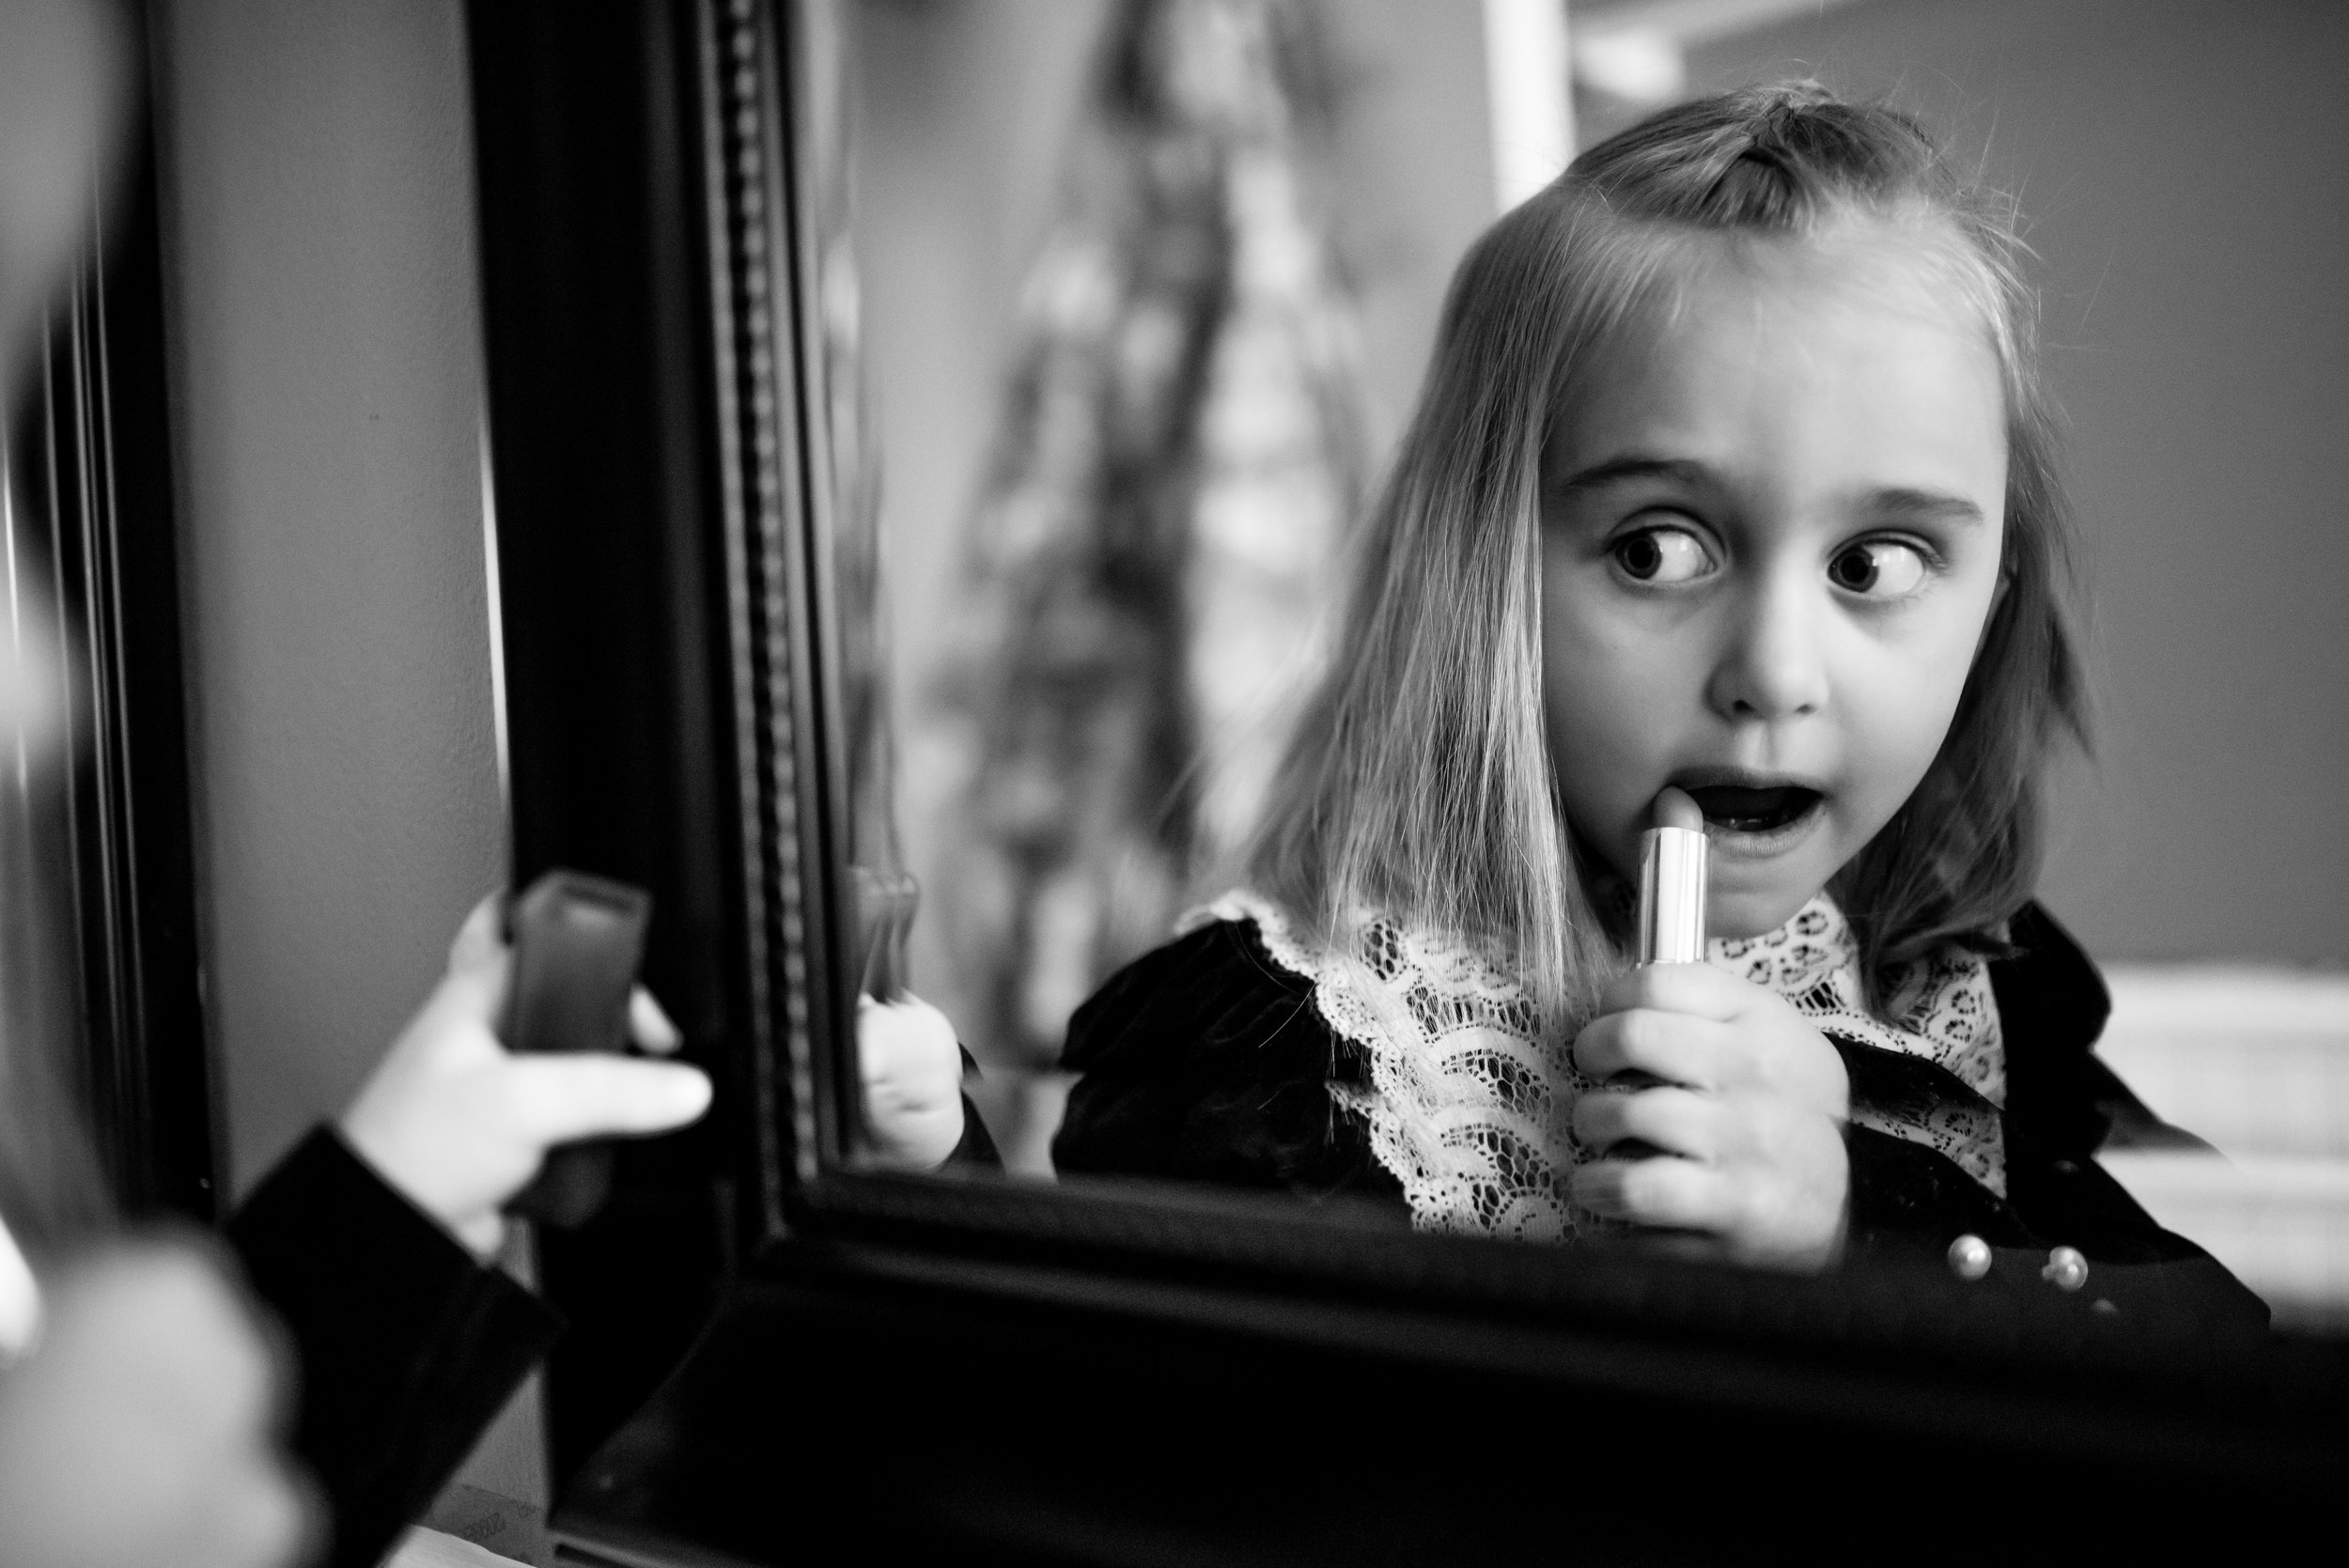 Girl applies lipstick while looking at herself in mirror